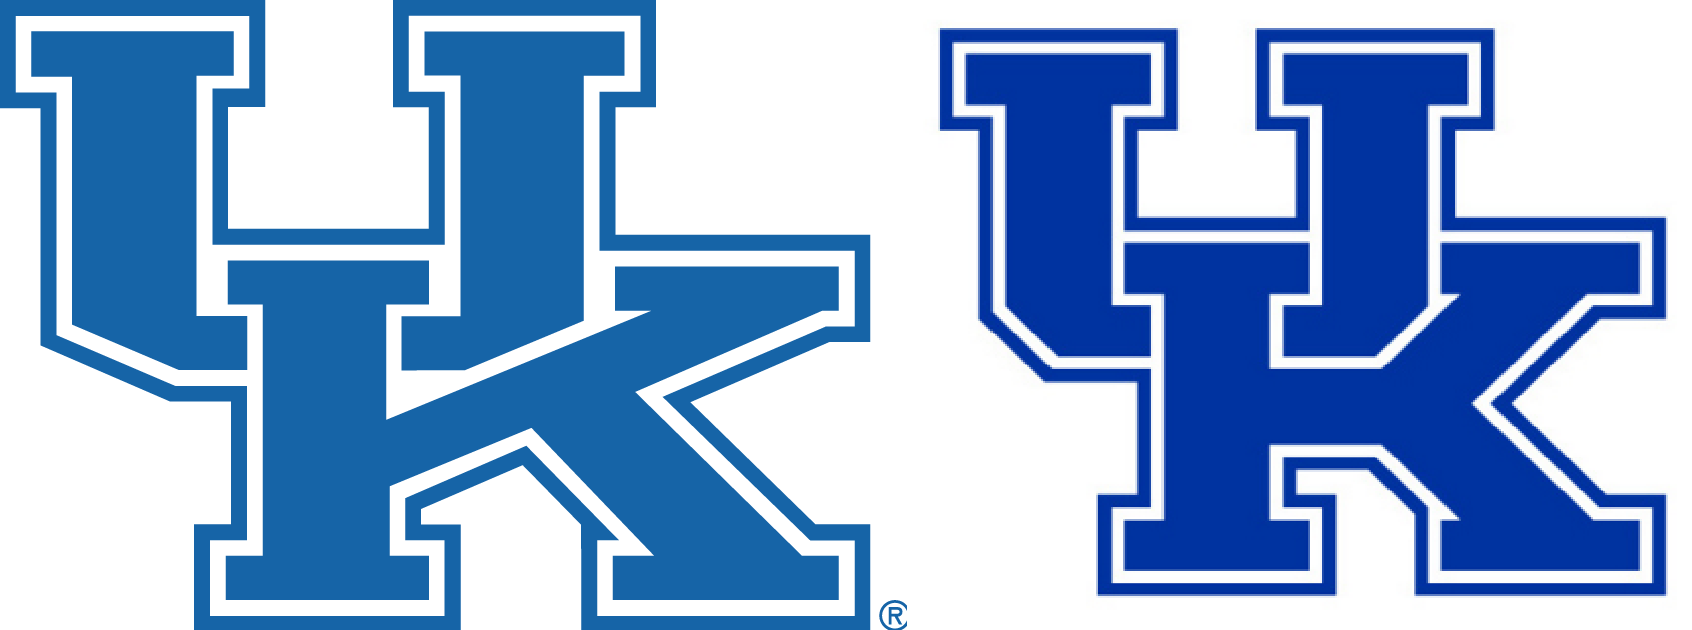 Kentucky Basketball And Football Getting New Uniforms: Kentucky Basketball And Football Getting New Uniforms